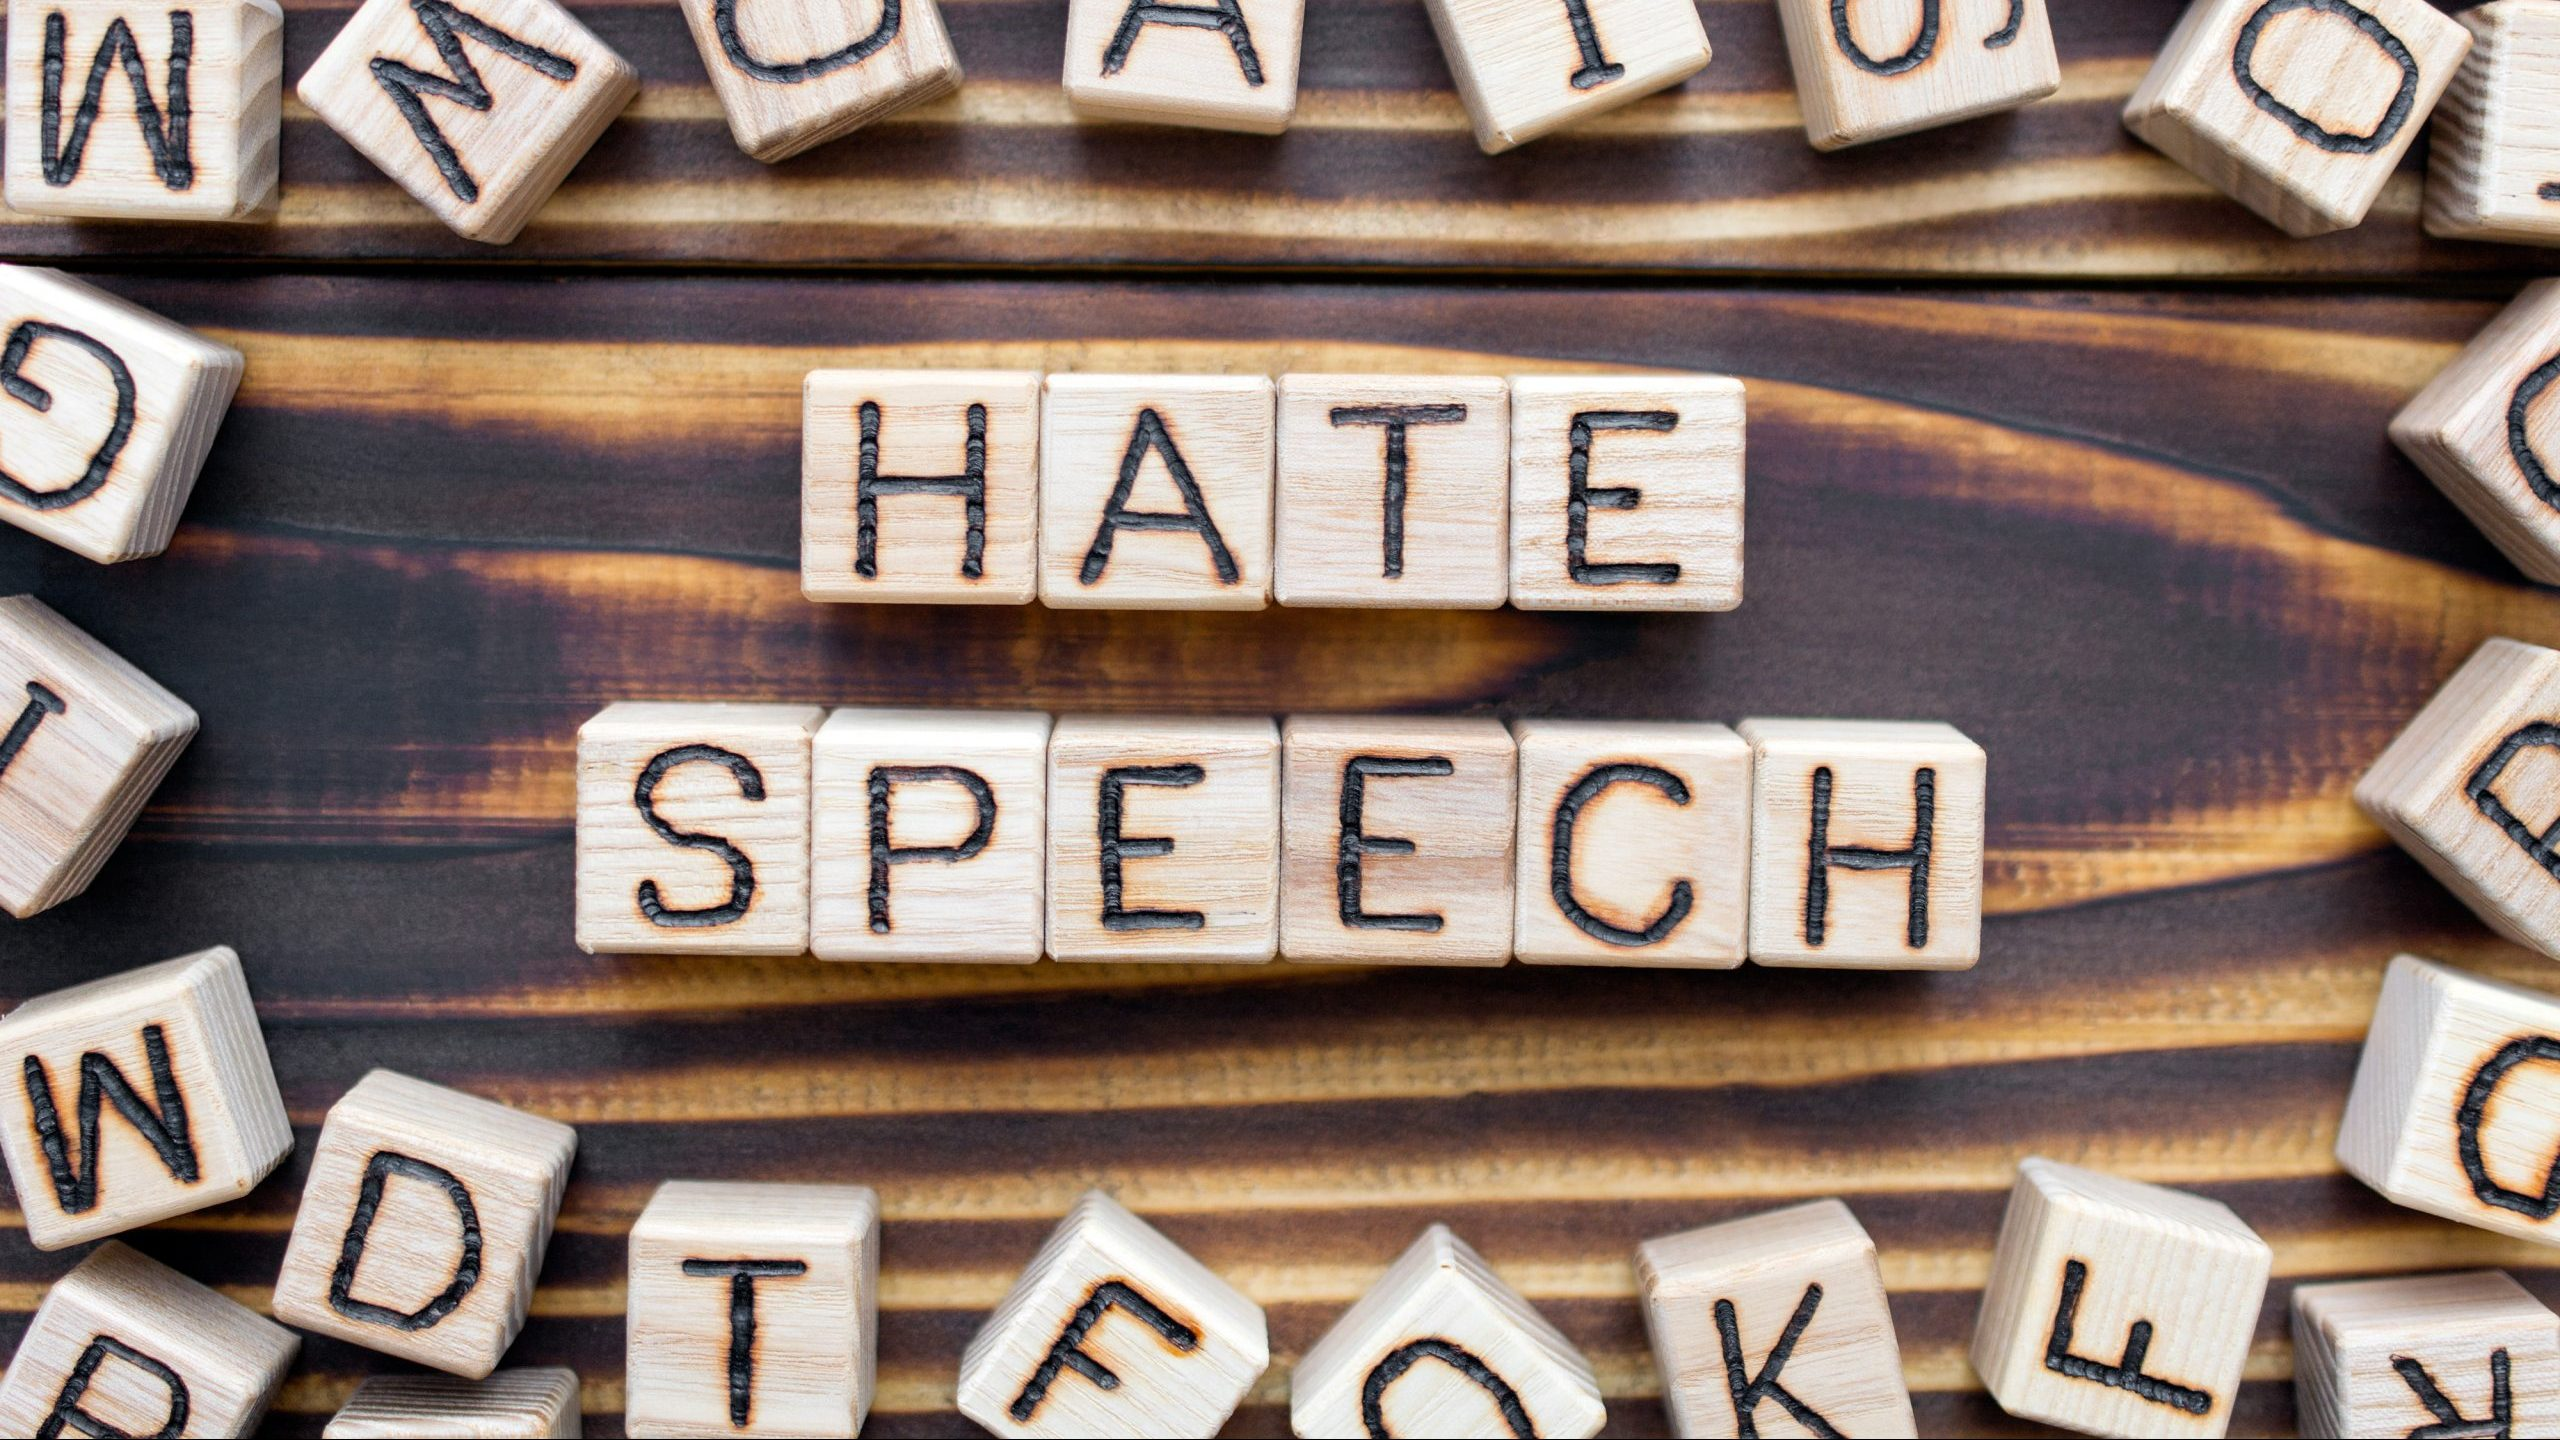 hate speech wooden cubes with letters, attacks a person or a group violence concept, around the cubes random letters, top view on wooden background